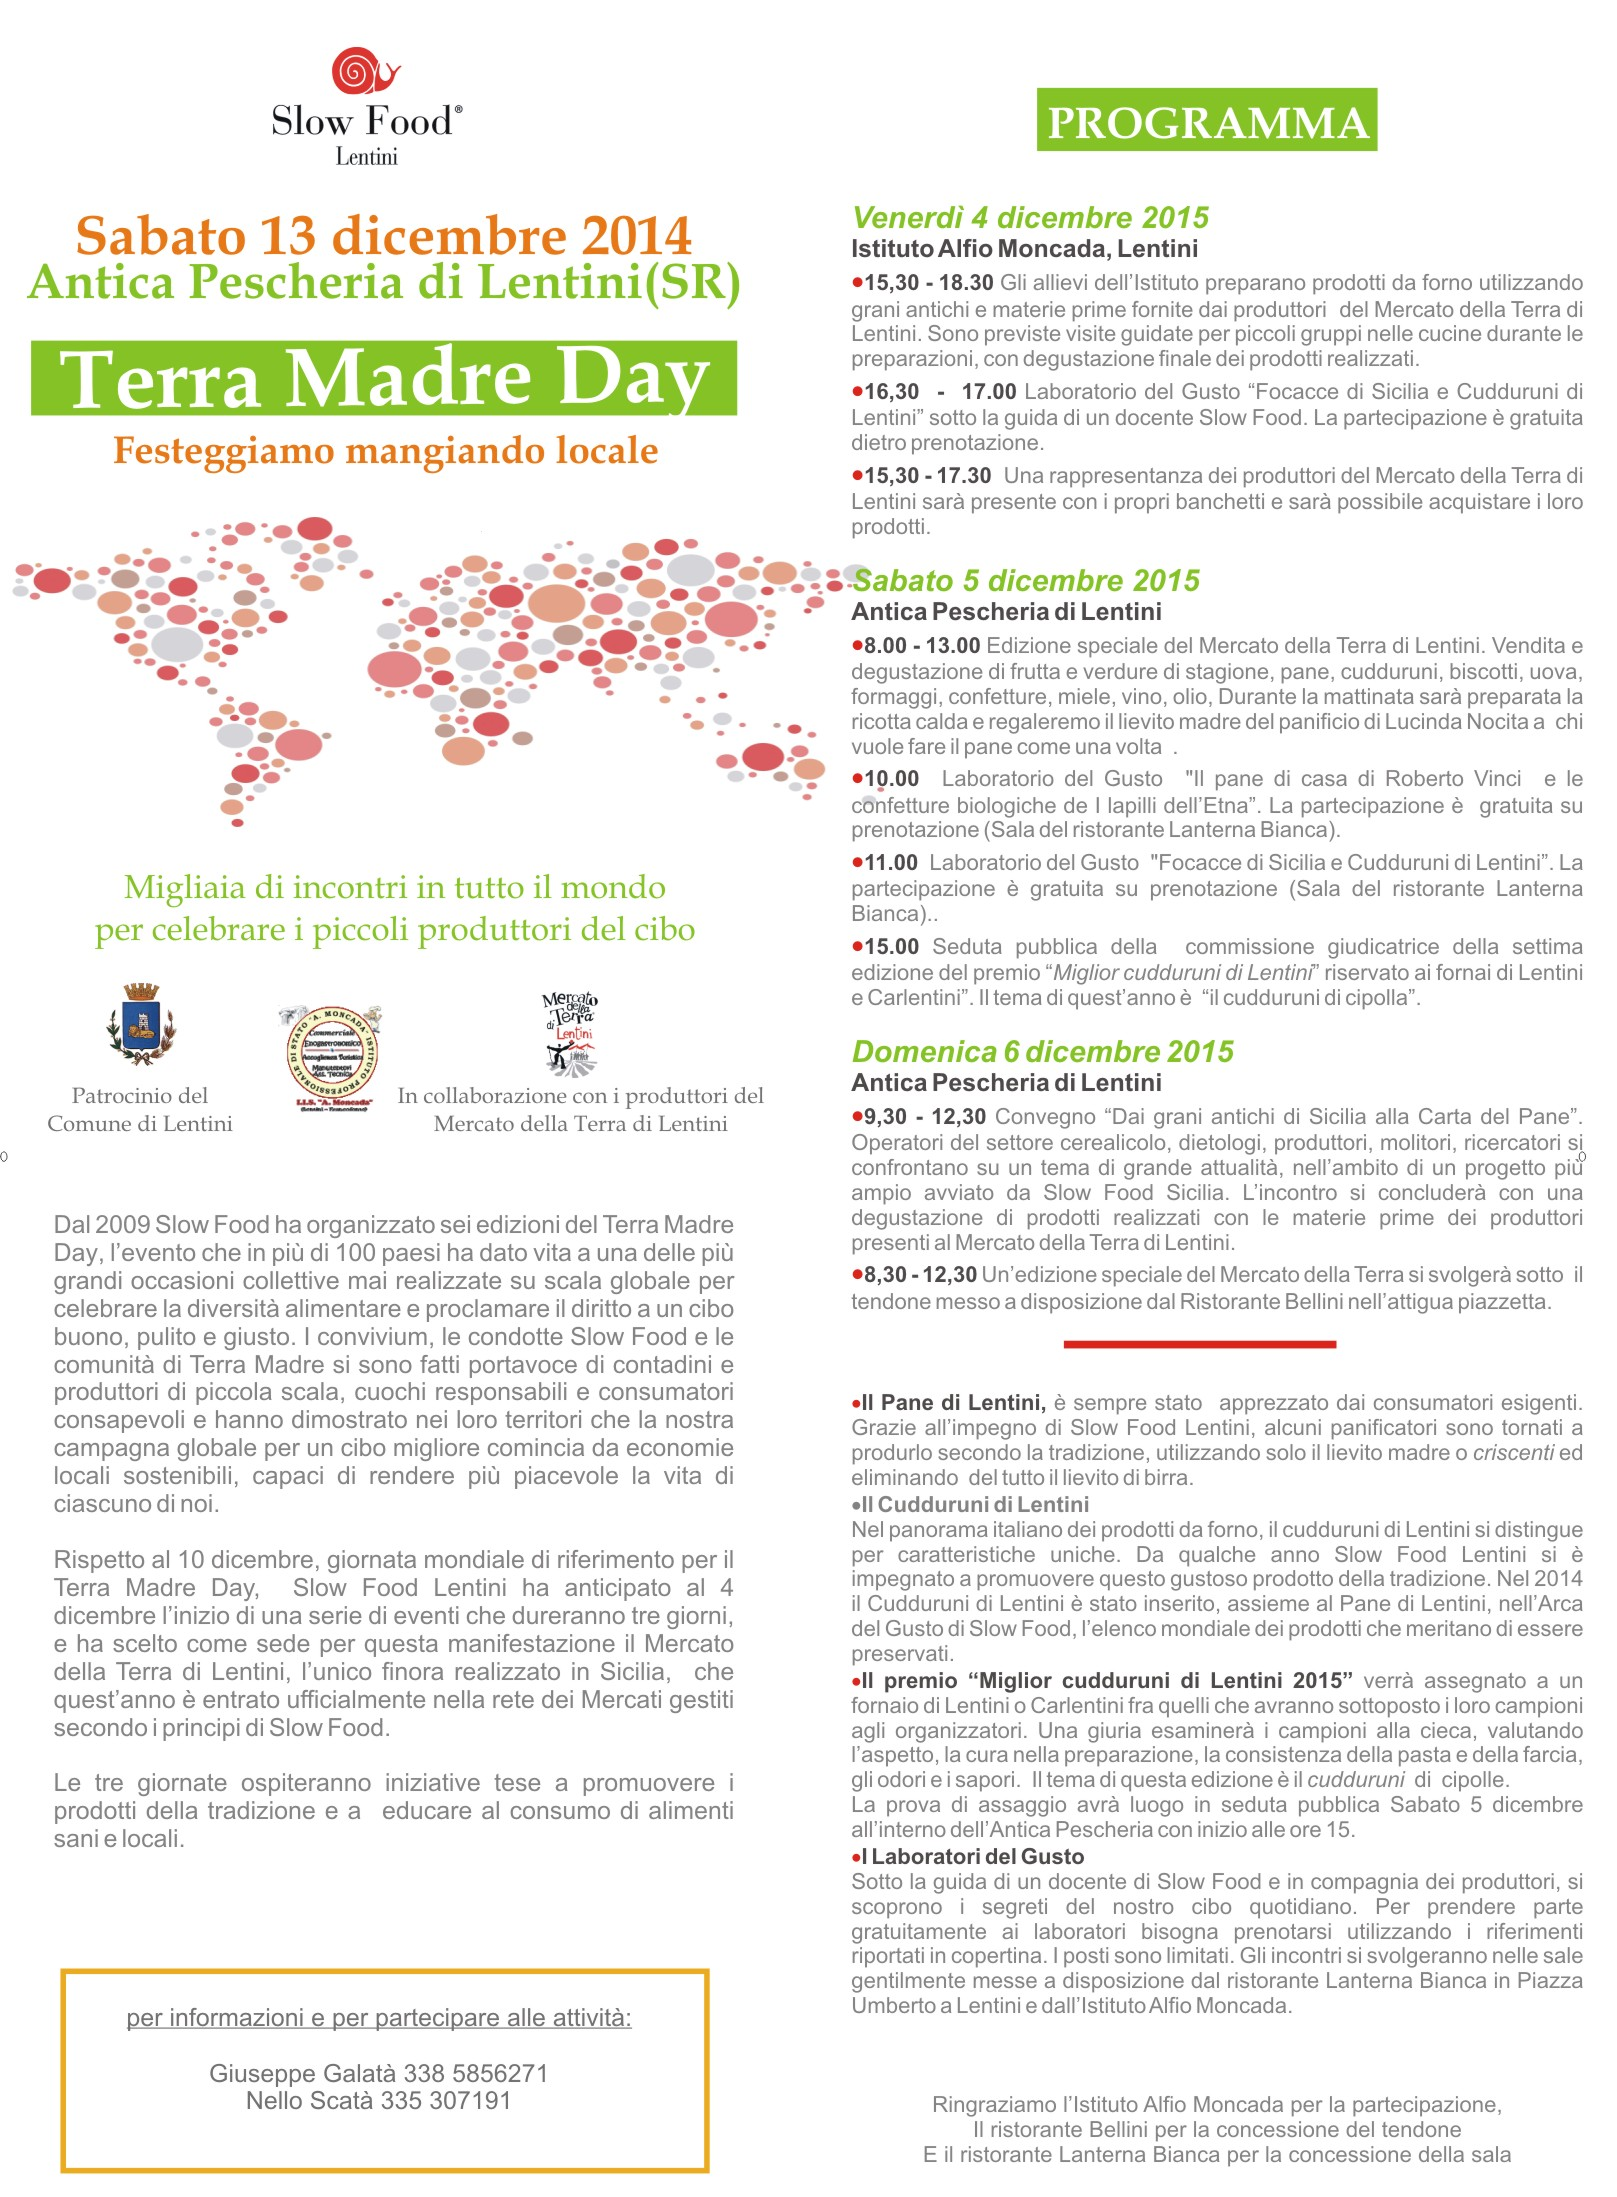 Slow Food Lentini: È Terra Madre Day !